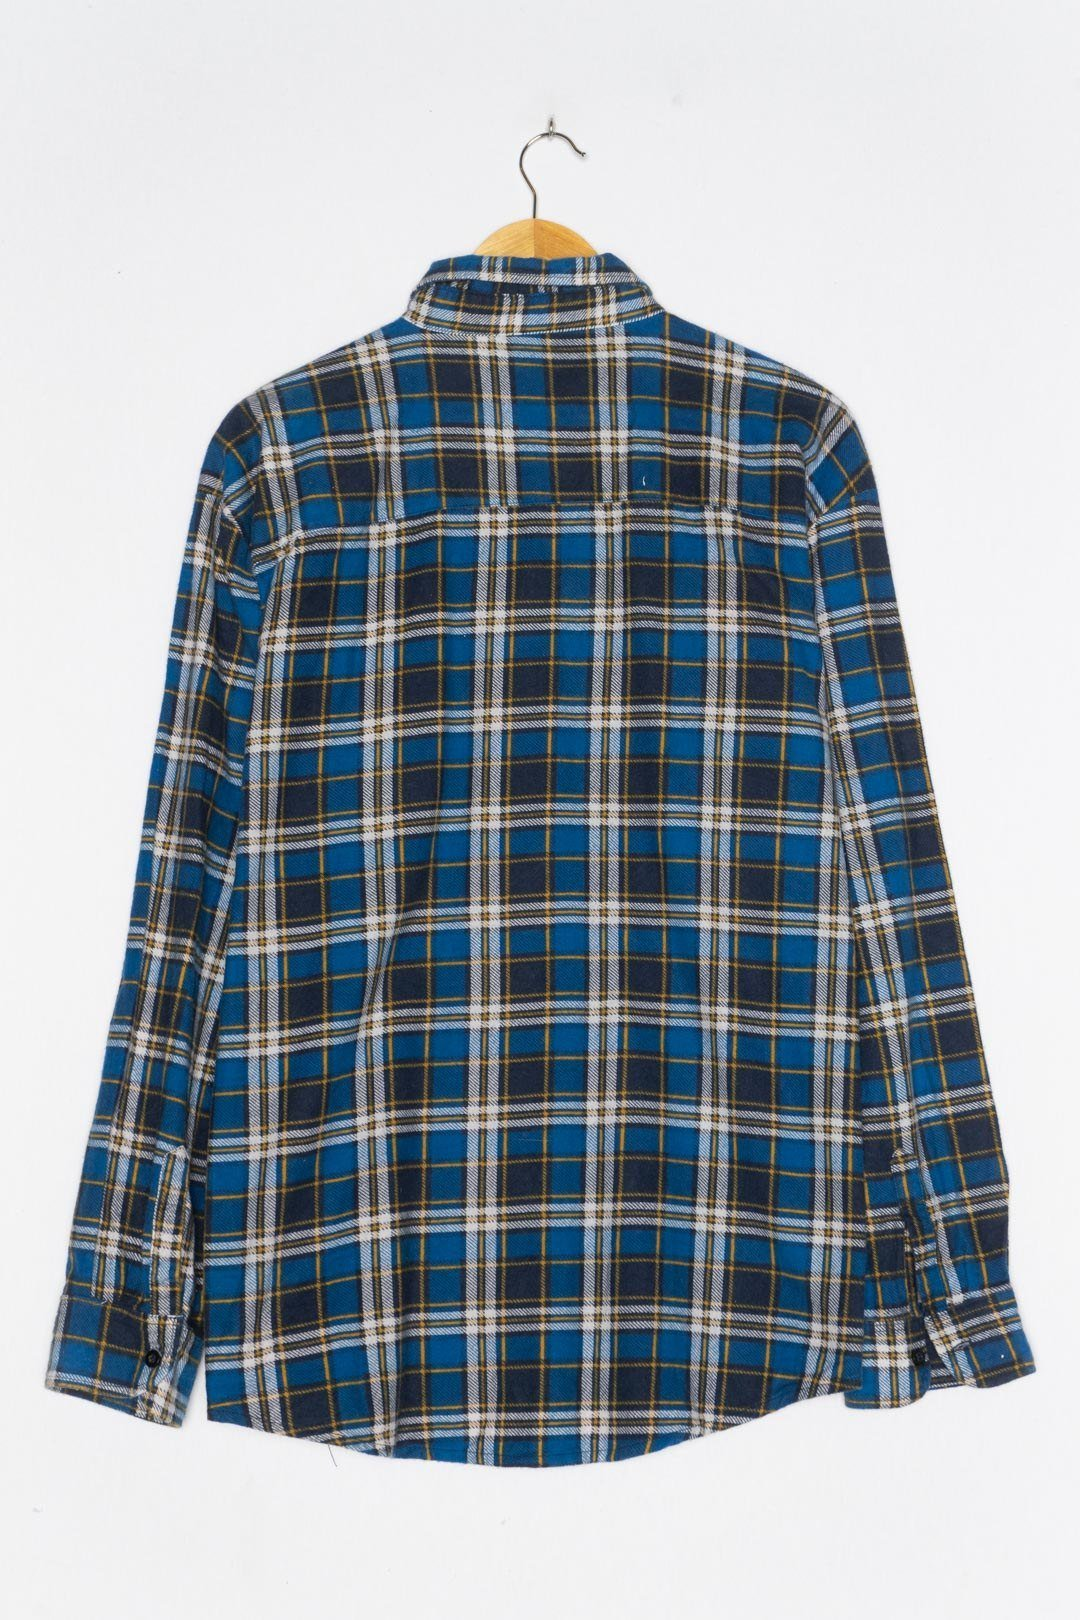 Blue Flannel Shirt XL - VinoKilo.com